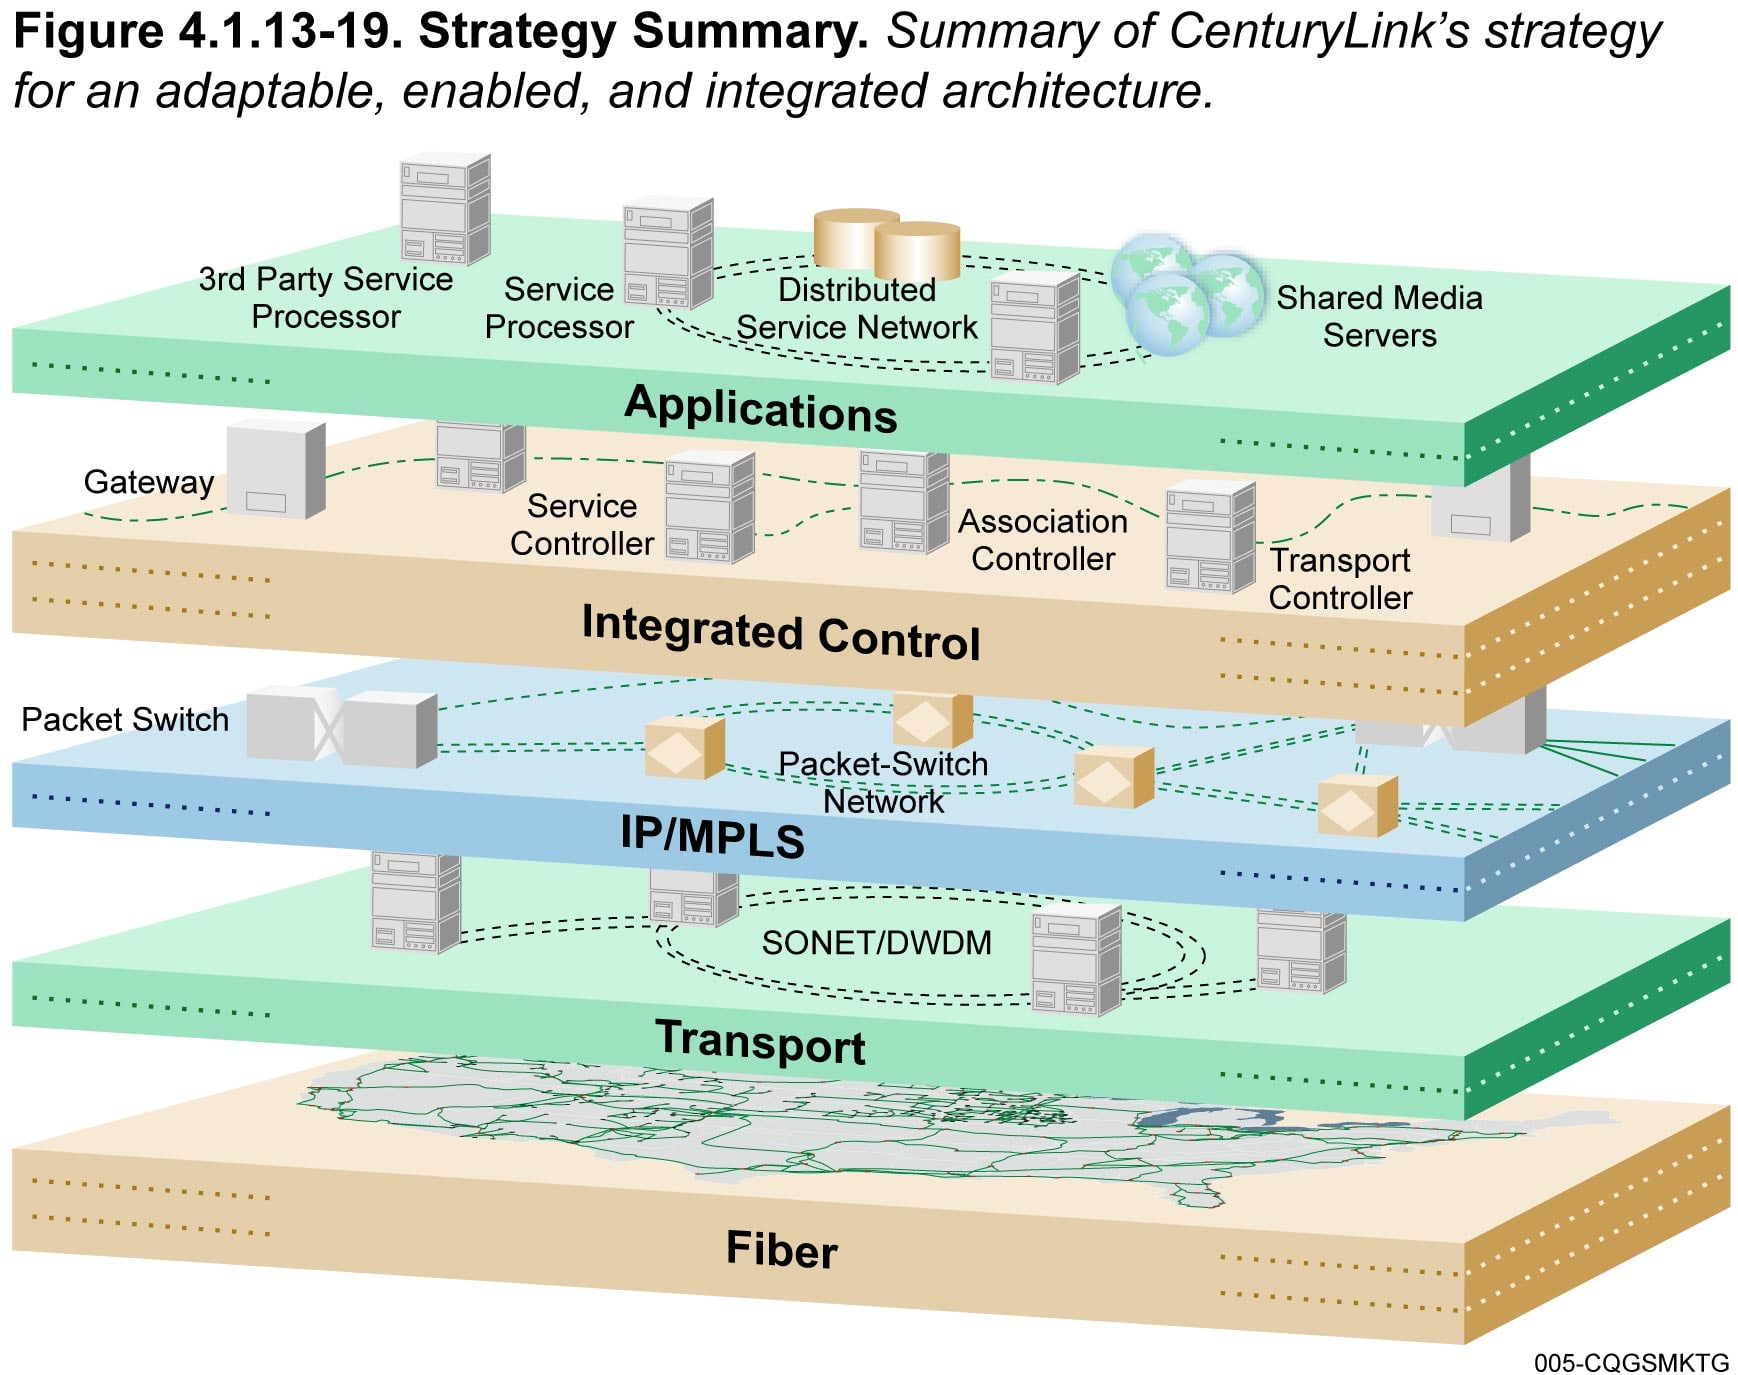 networx - about centurylink, network architecture